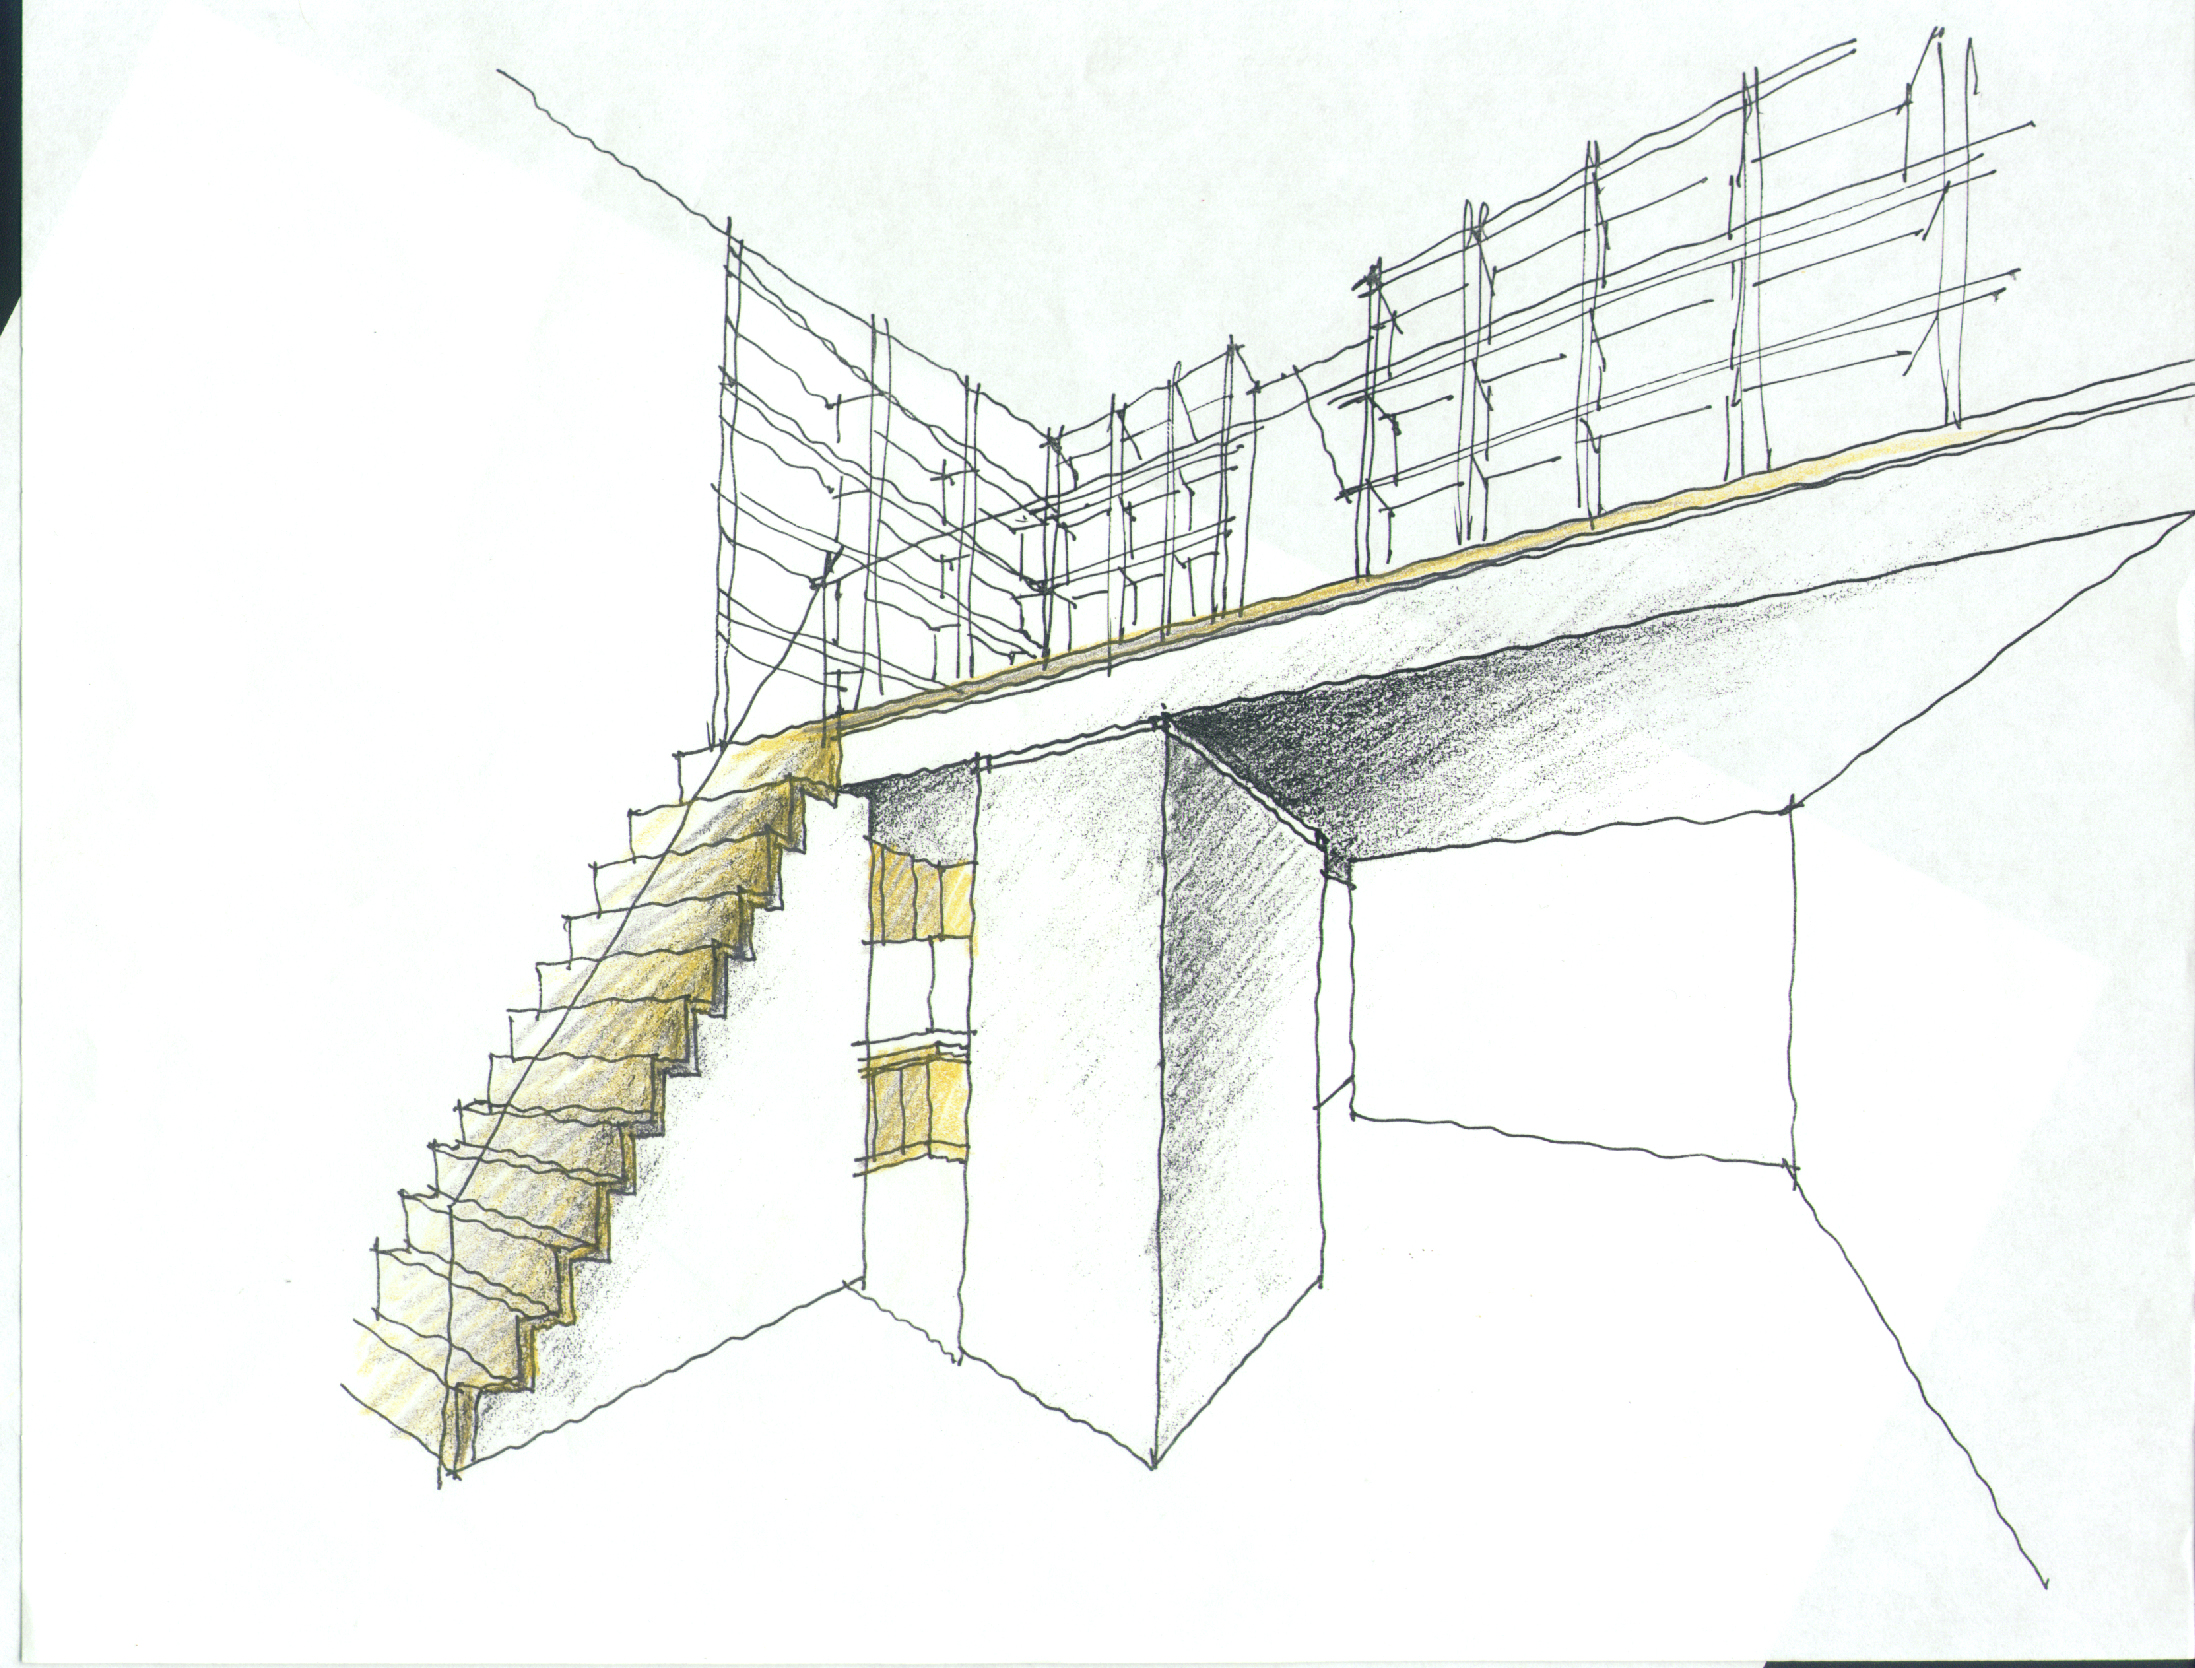 Design Sketch For Stairs Mezzanine John M Reimnitz